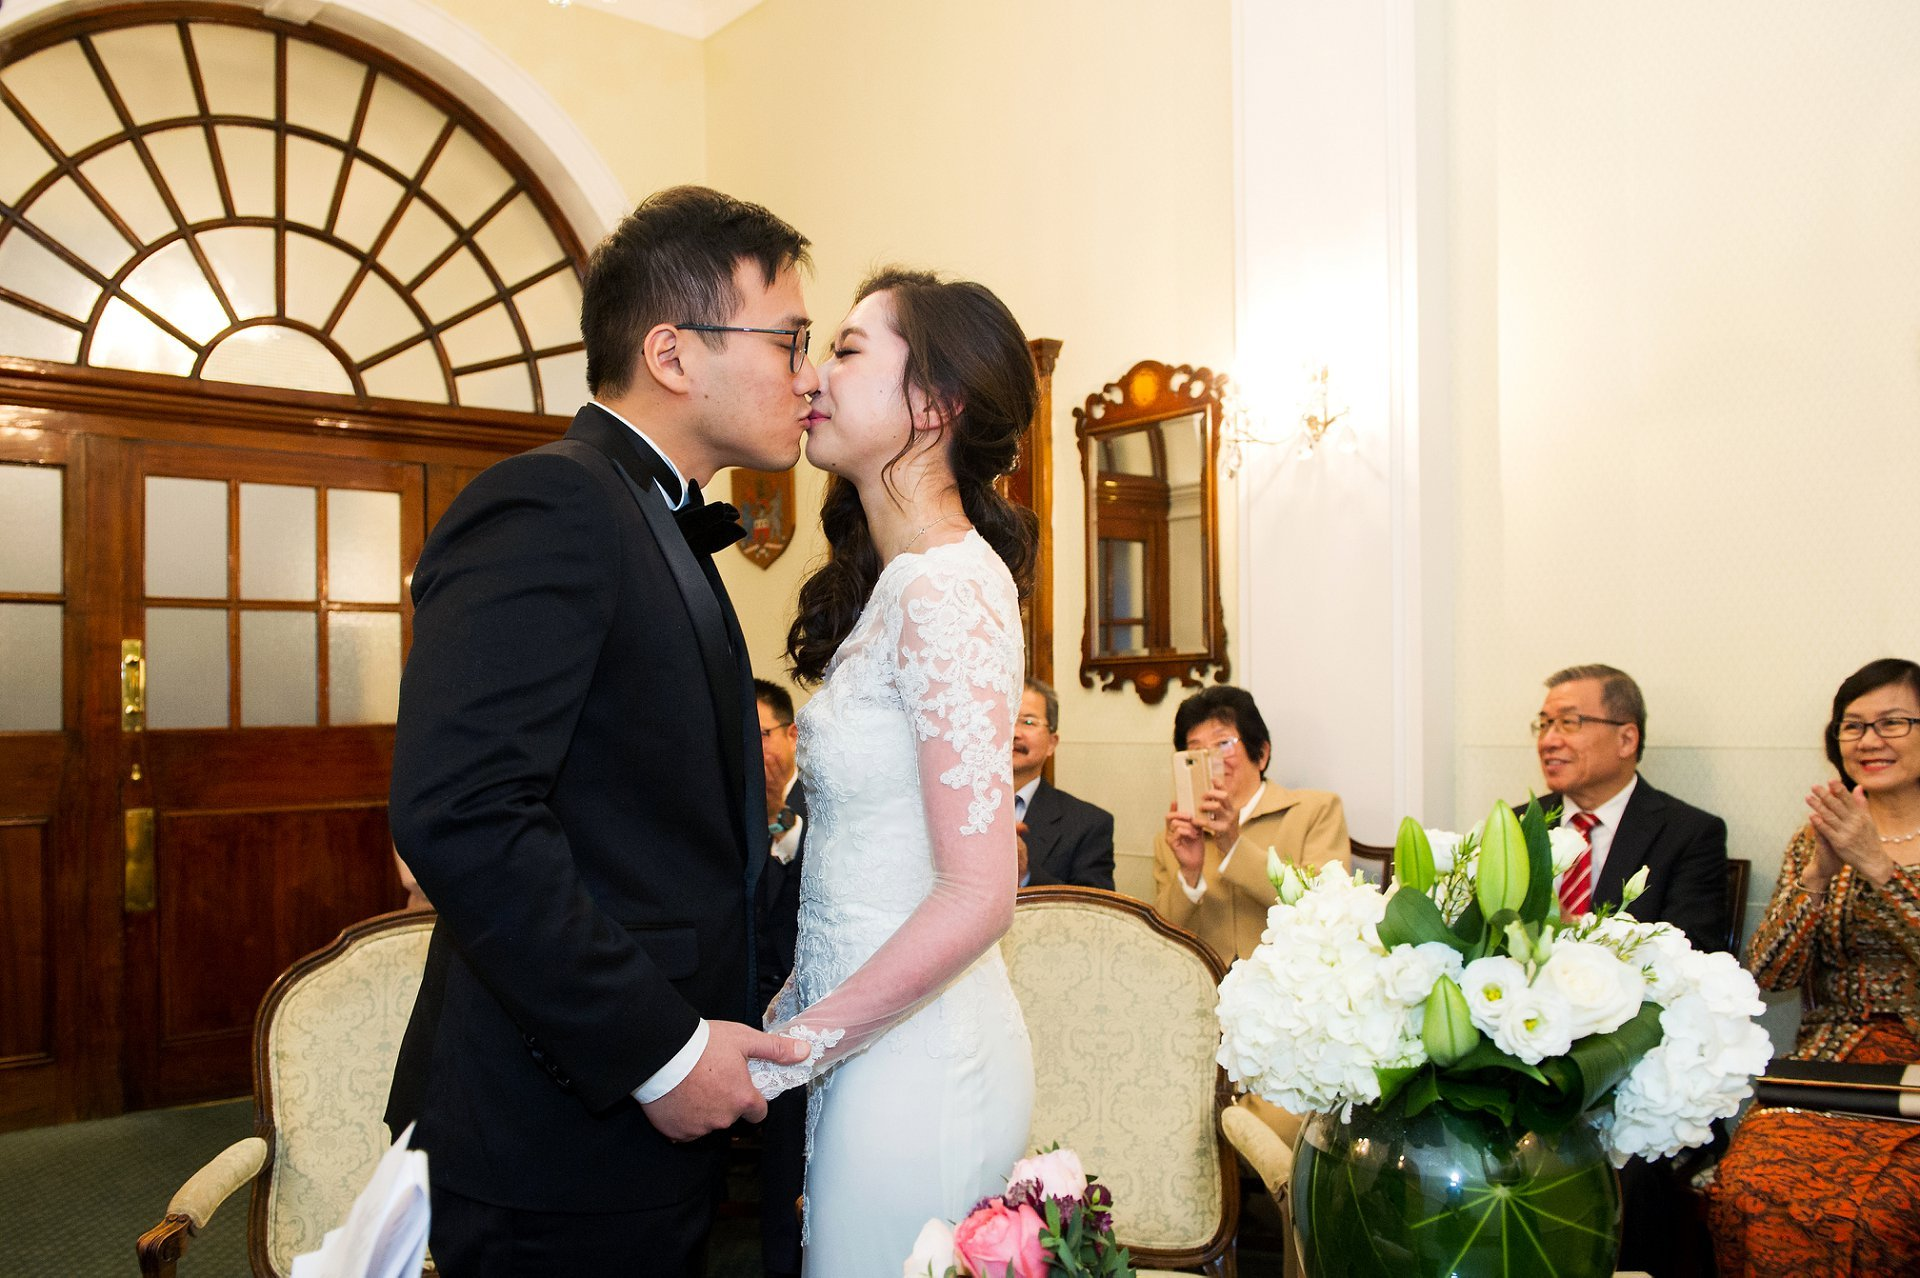 Bride and groom seal their marriage with a kiss in Chelsea's Rossetti Room with family and friends watching